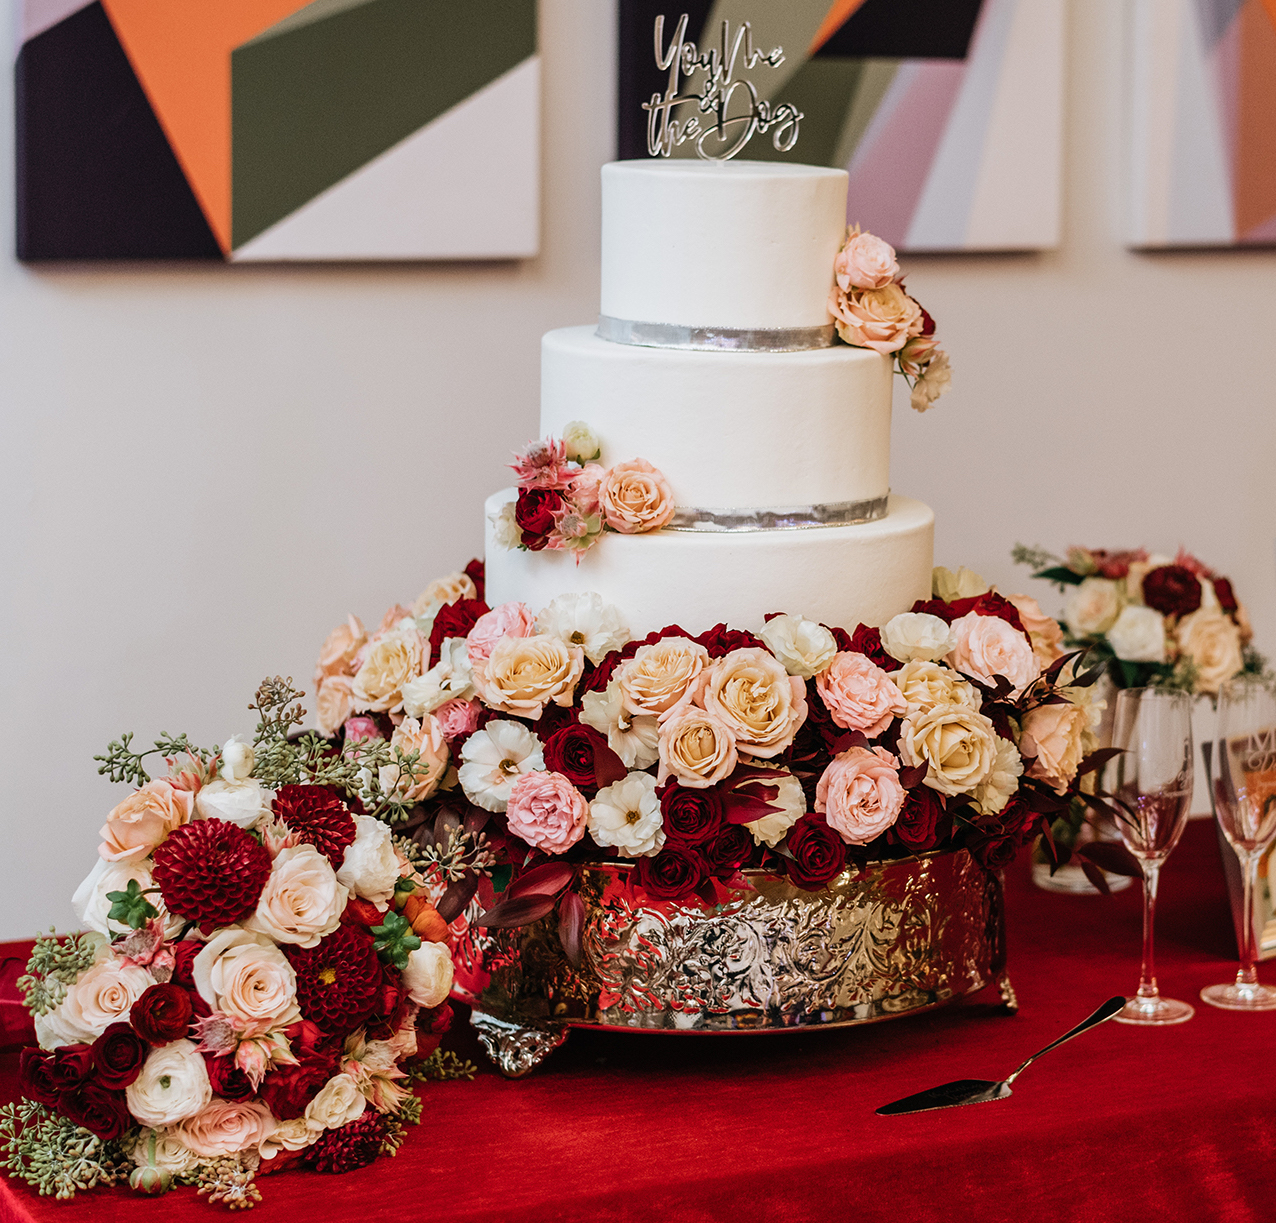 The wedding cake is surrounded with ruby red roses and beige and pink filler flowers.